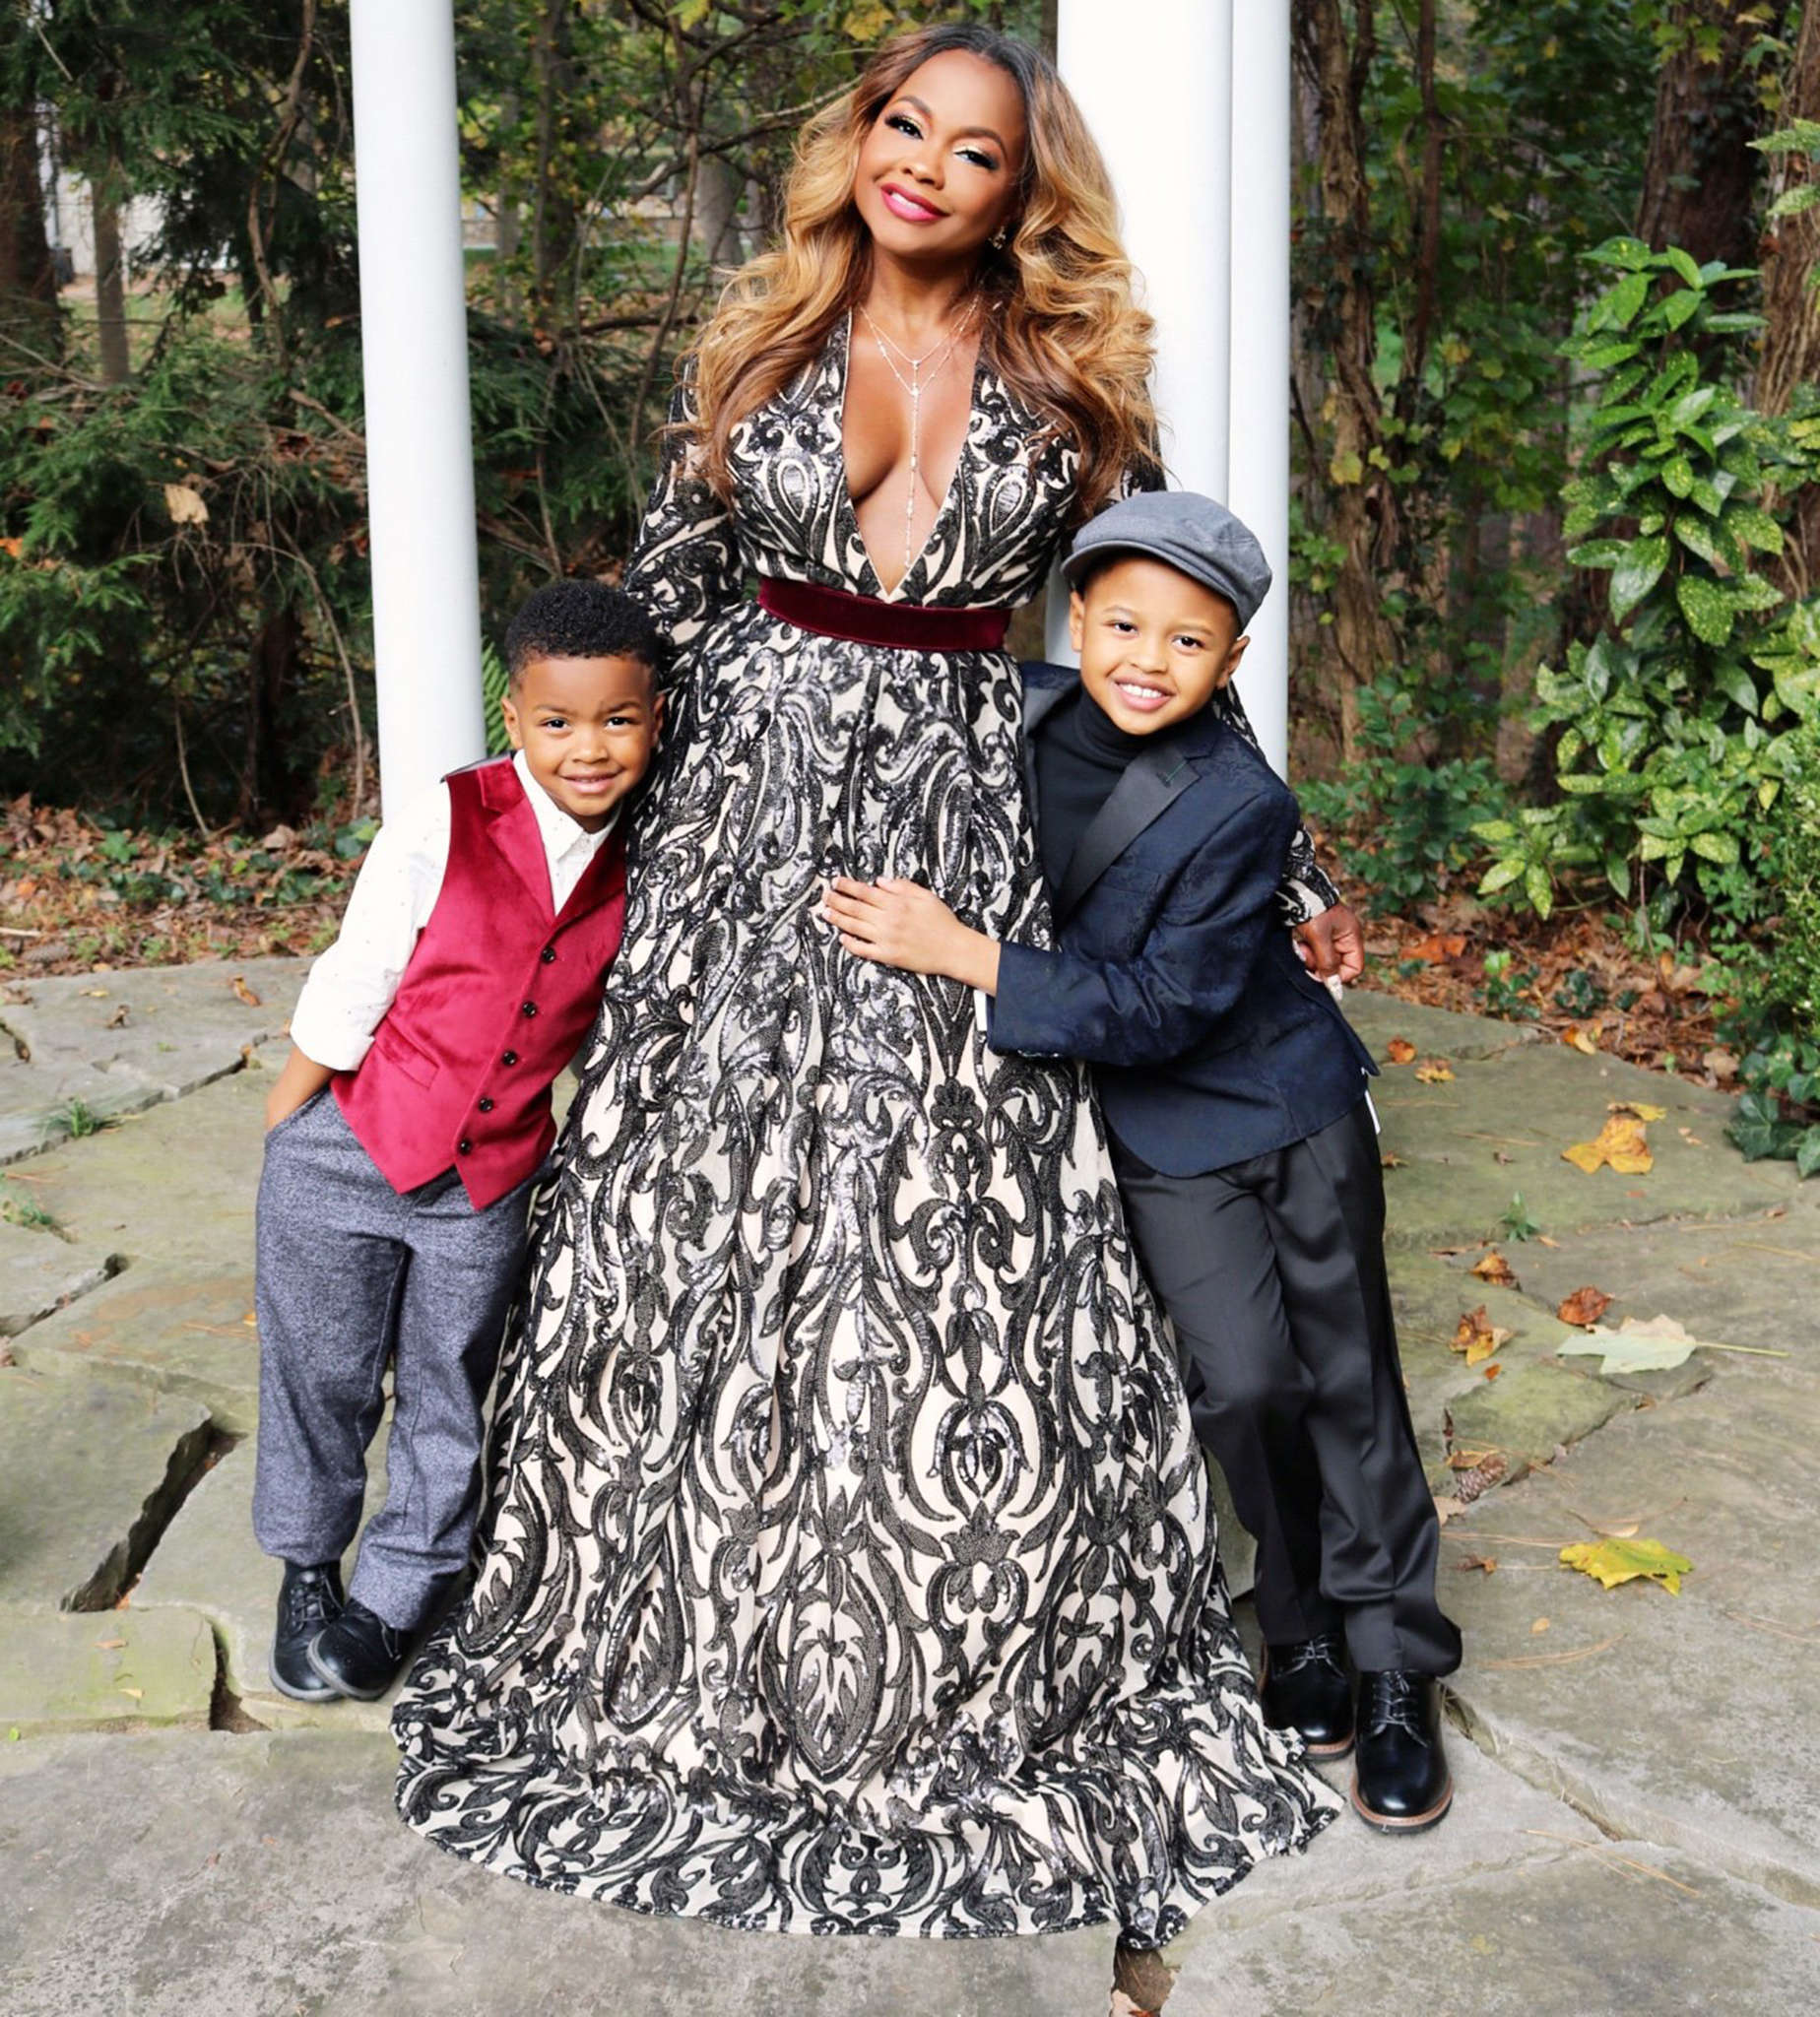 Phaedra Parks Looks Gorgeous In A Red Gown For Christmas - See The Photo Here